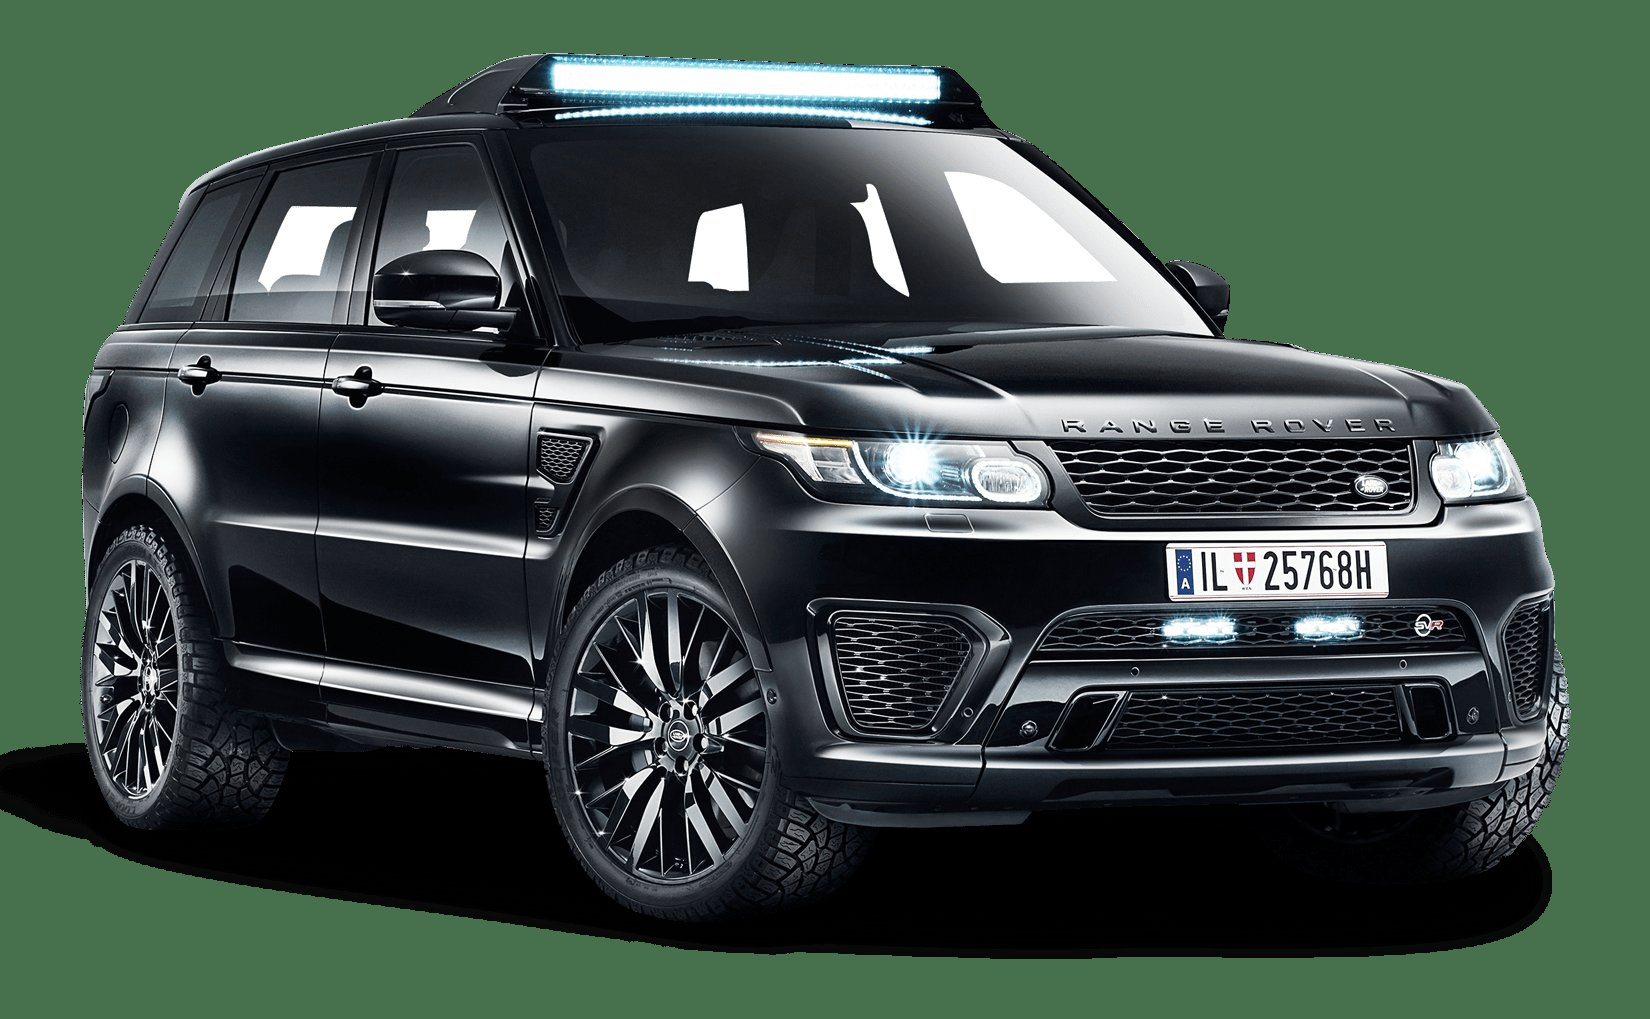 Latest Black Range Rover Sport Car Png Image Pngpix Free Download